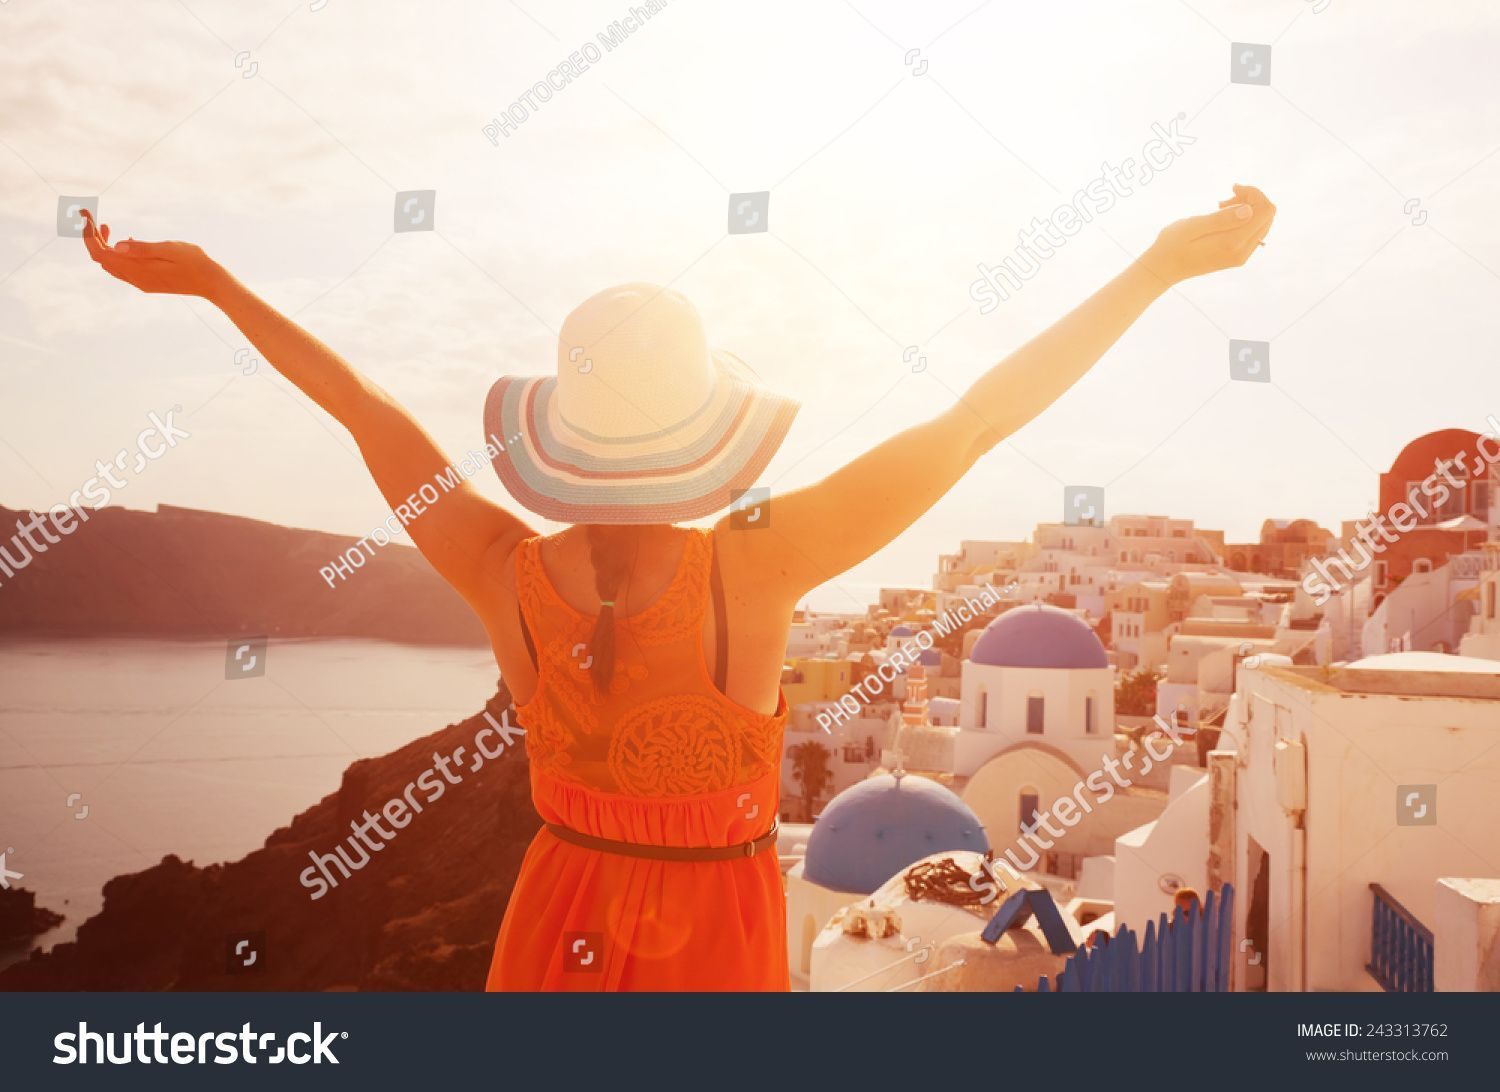 Happy woman in sun hat enjoying her holidays on Santorini, Greece. View on Caldera and Aegean sea from Oia. Active, travel, tourist concepts #Ad , #AFFILIATE, #holidays#enjoying#Greece#Santorini #aegeansea Happy woman in sun hat enjoying her holidays on Santorini, Greece. View on Caldera and Aegean sea from Oia. Active, travel, tourist concepts #Ad , #AFFILIATE, #holidays#enjoying#Greece#Santorini #aegeansea